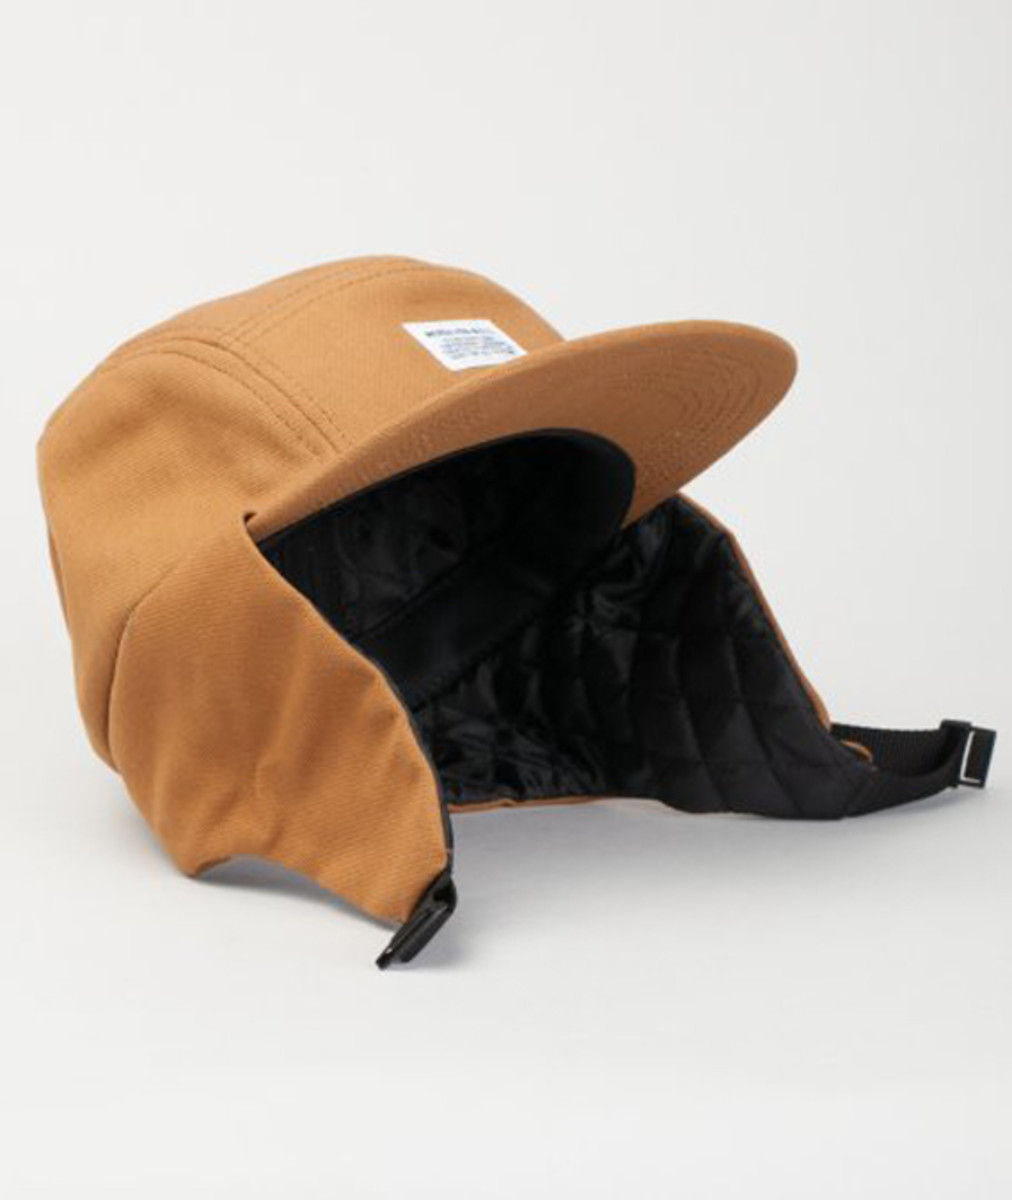 norse-projects-earflap-duck-canvas-cap-08